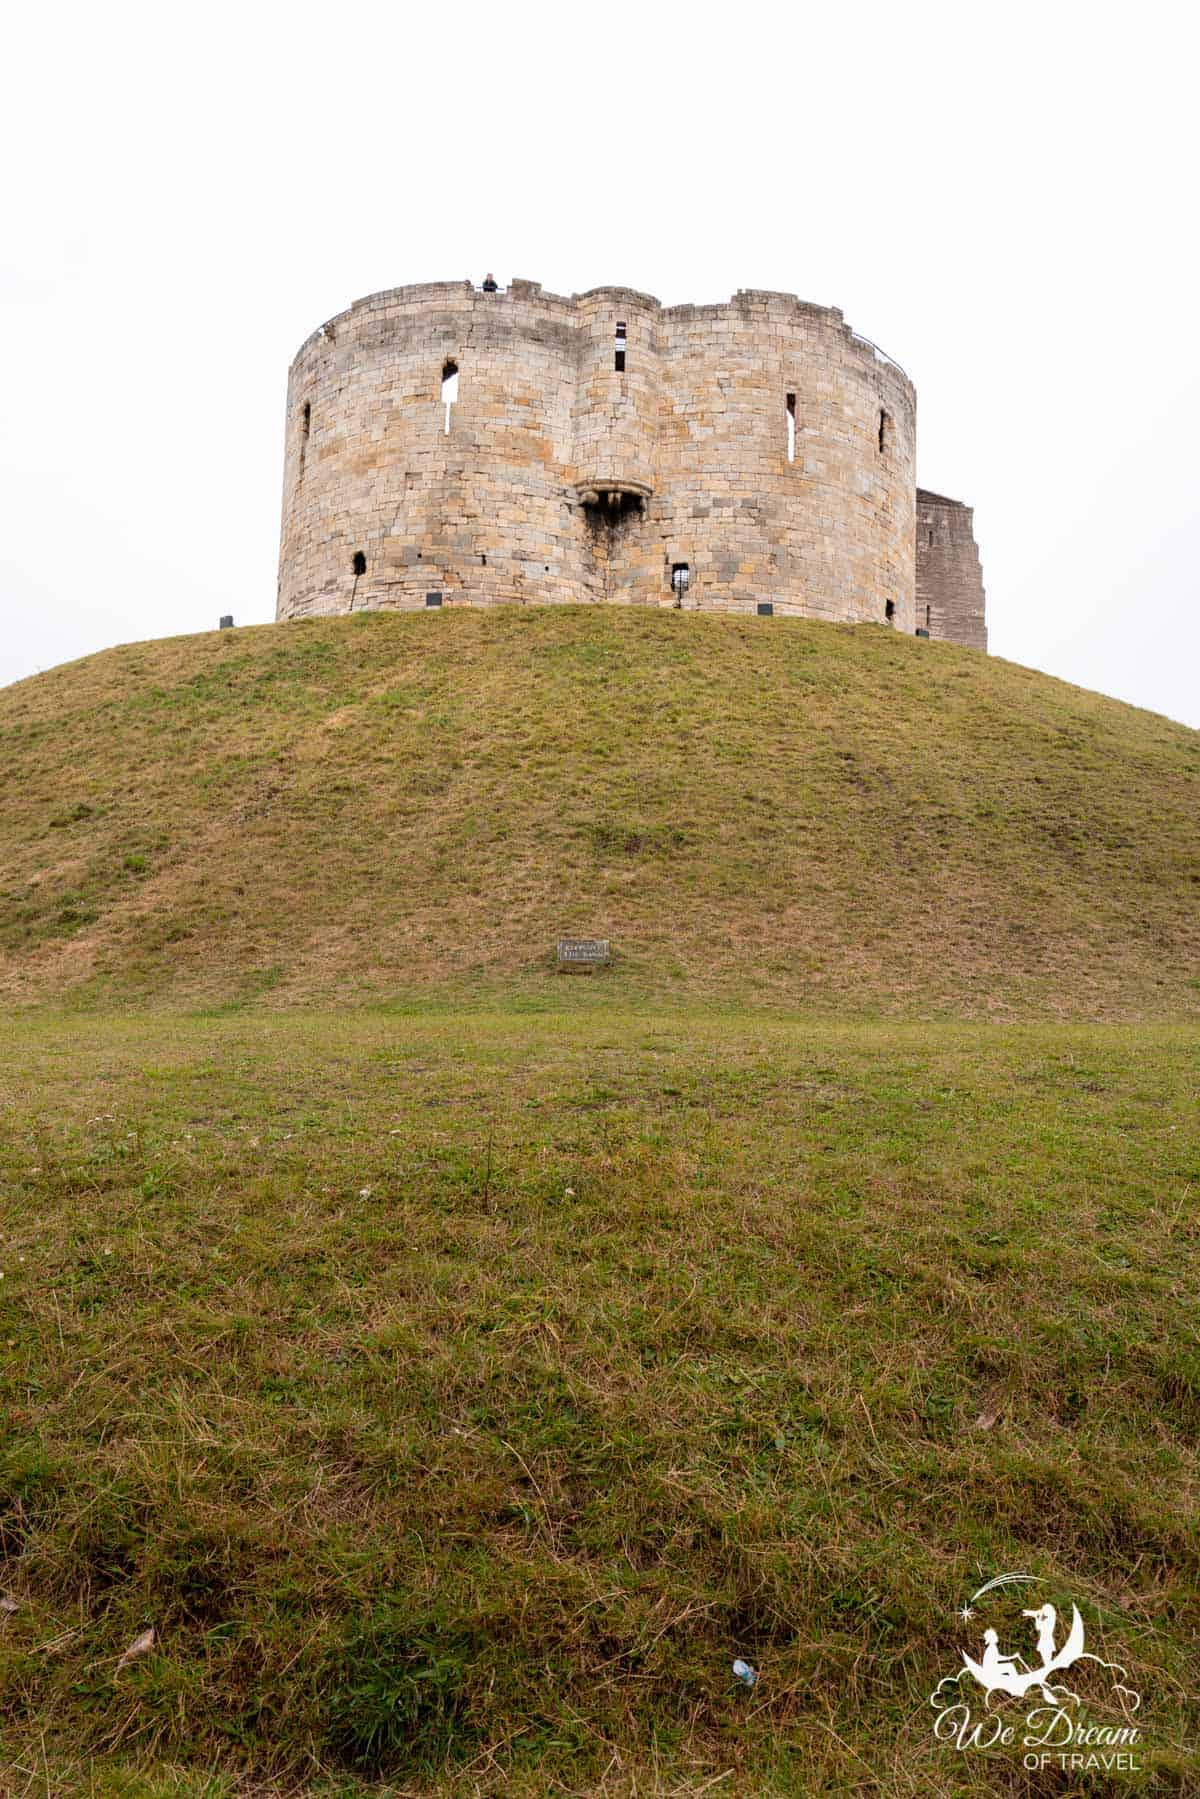 Clifford Tower sat majestically atop its hill in York